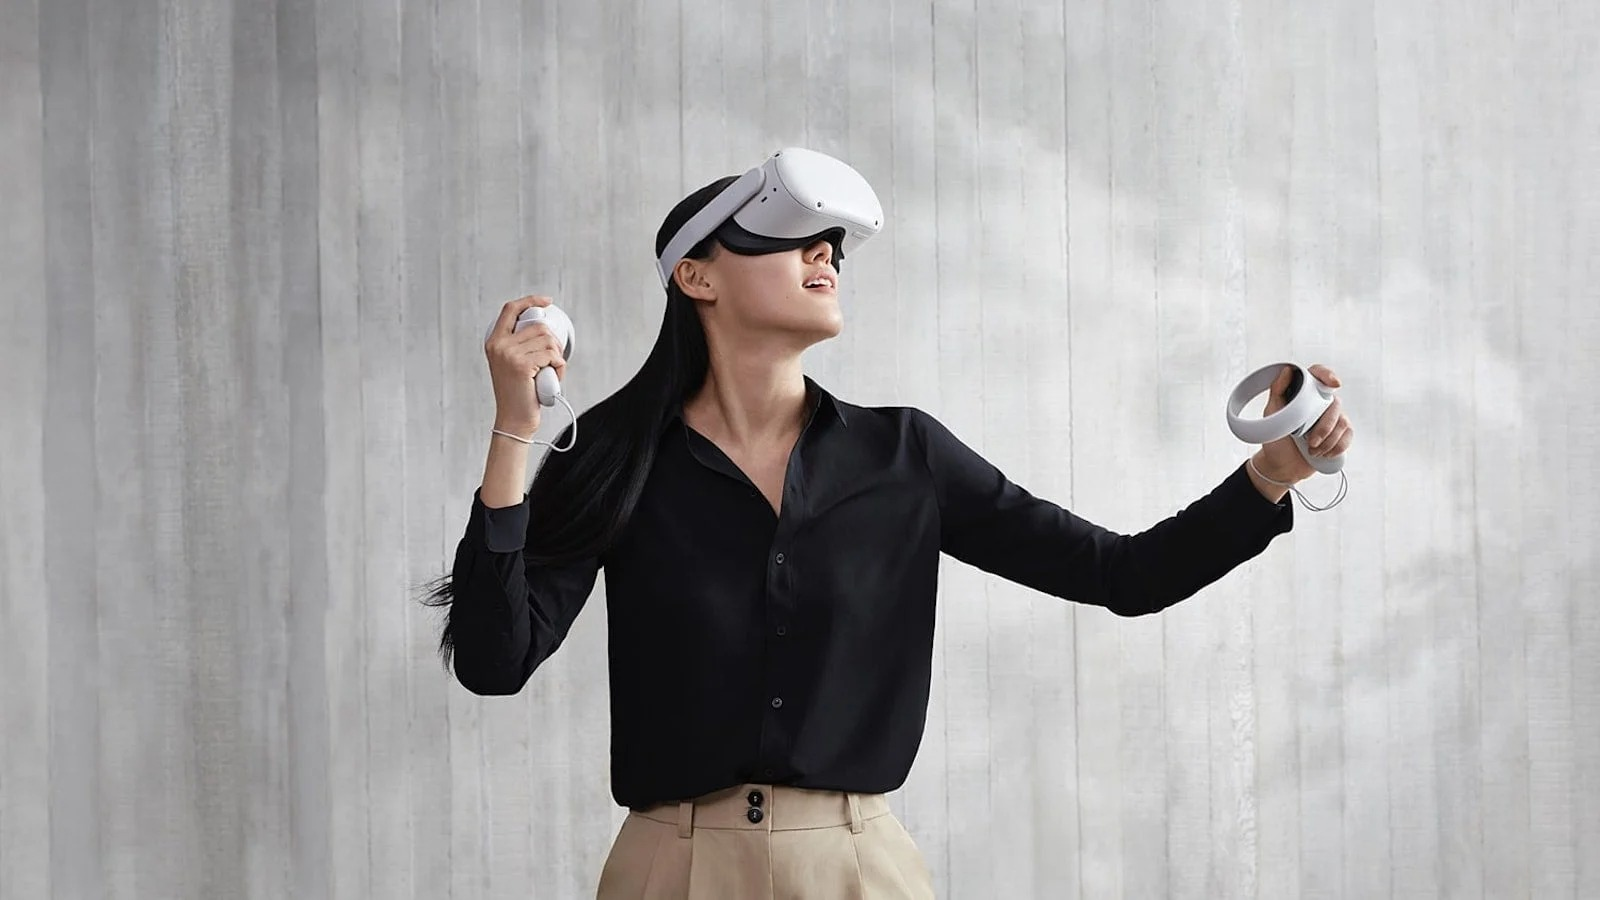 The future of gaming: mobile phones, cloud computing, VR, and more